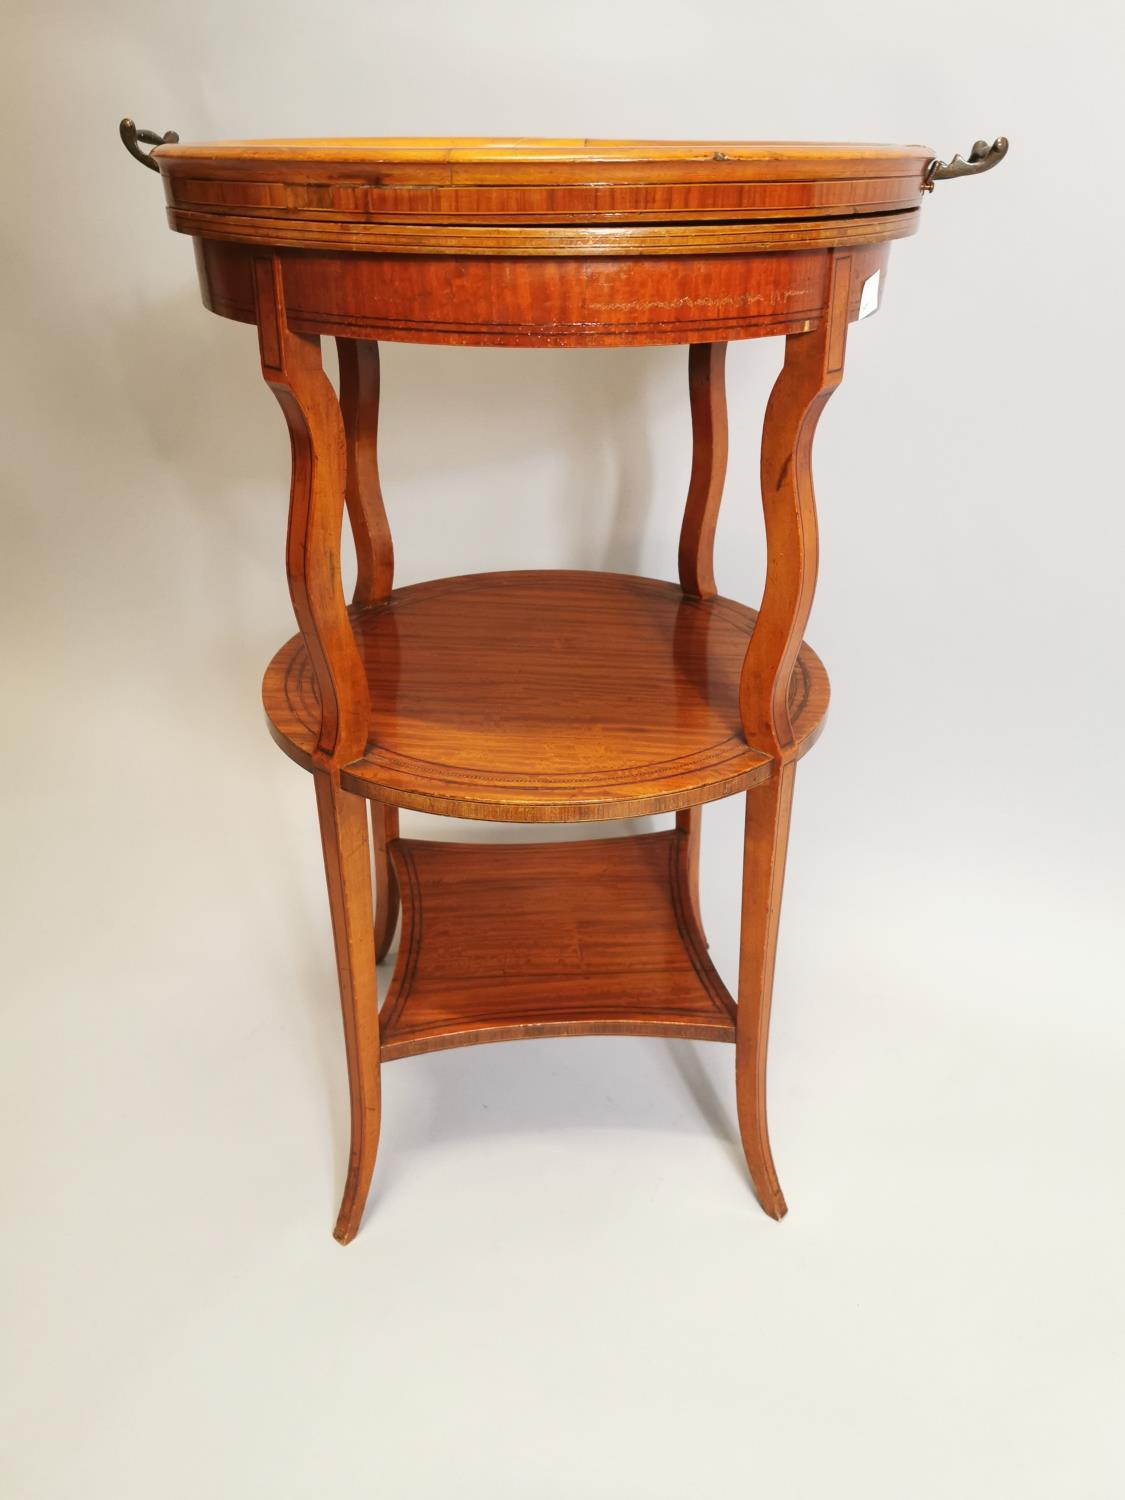 19th. C. satinwood wine table - Image 4 of 5